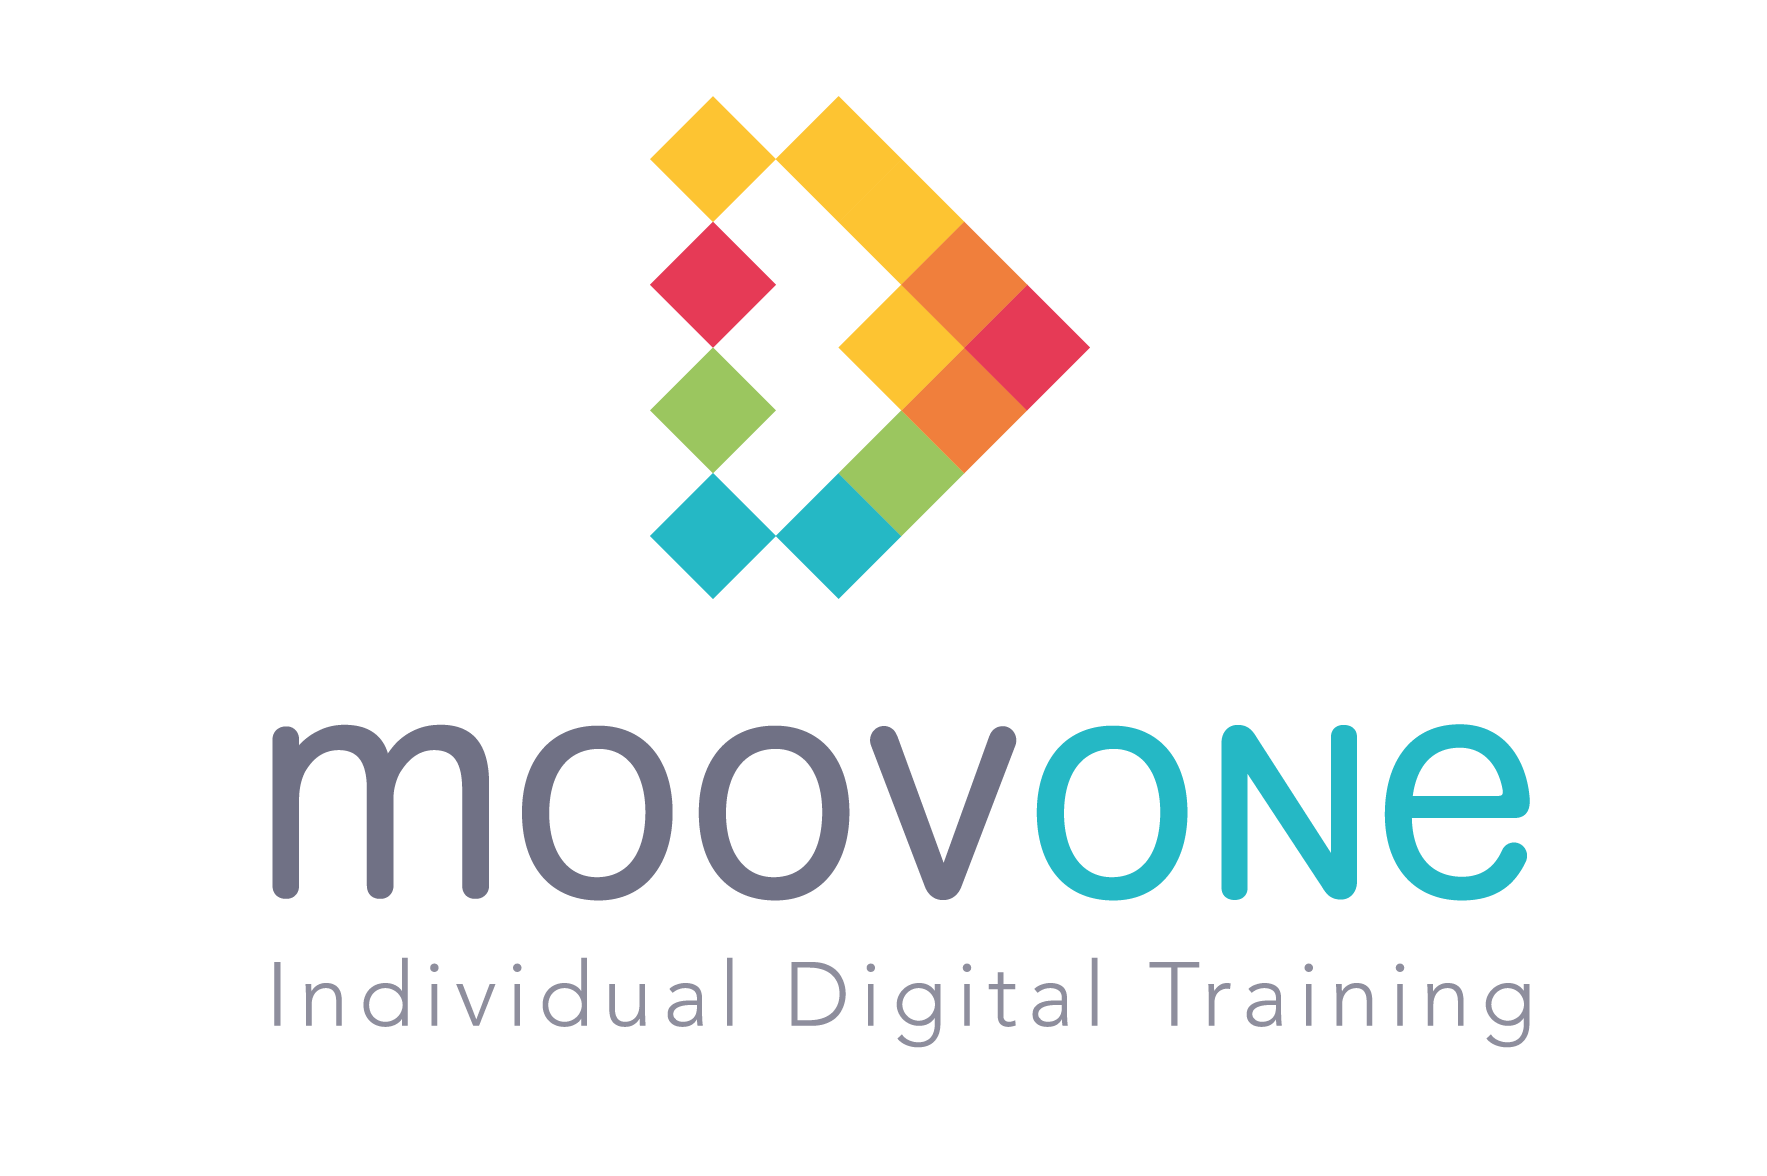 Moovone Individual Digital Training